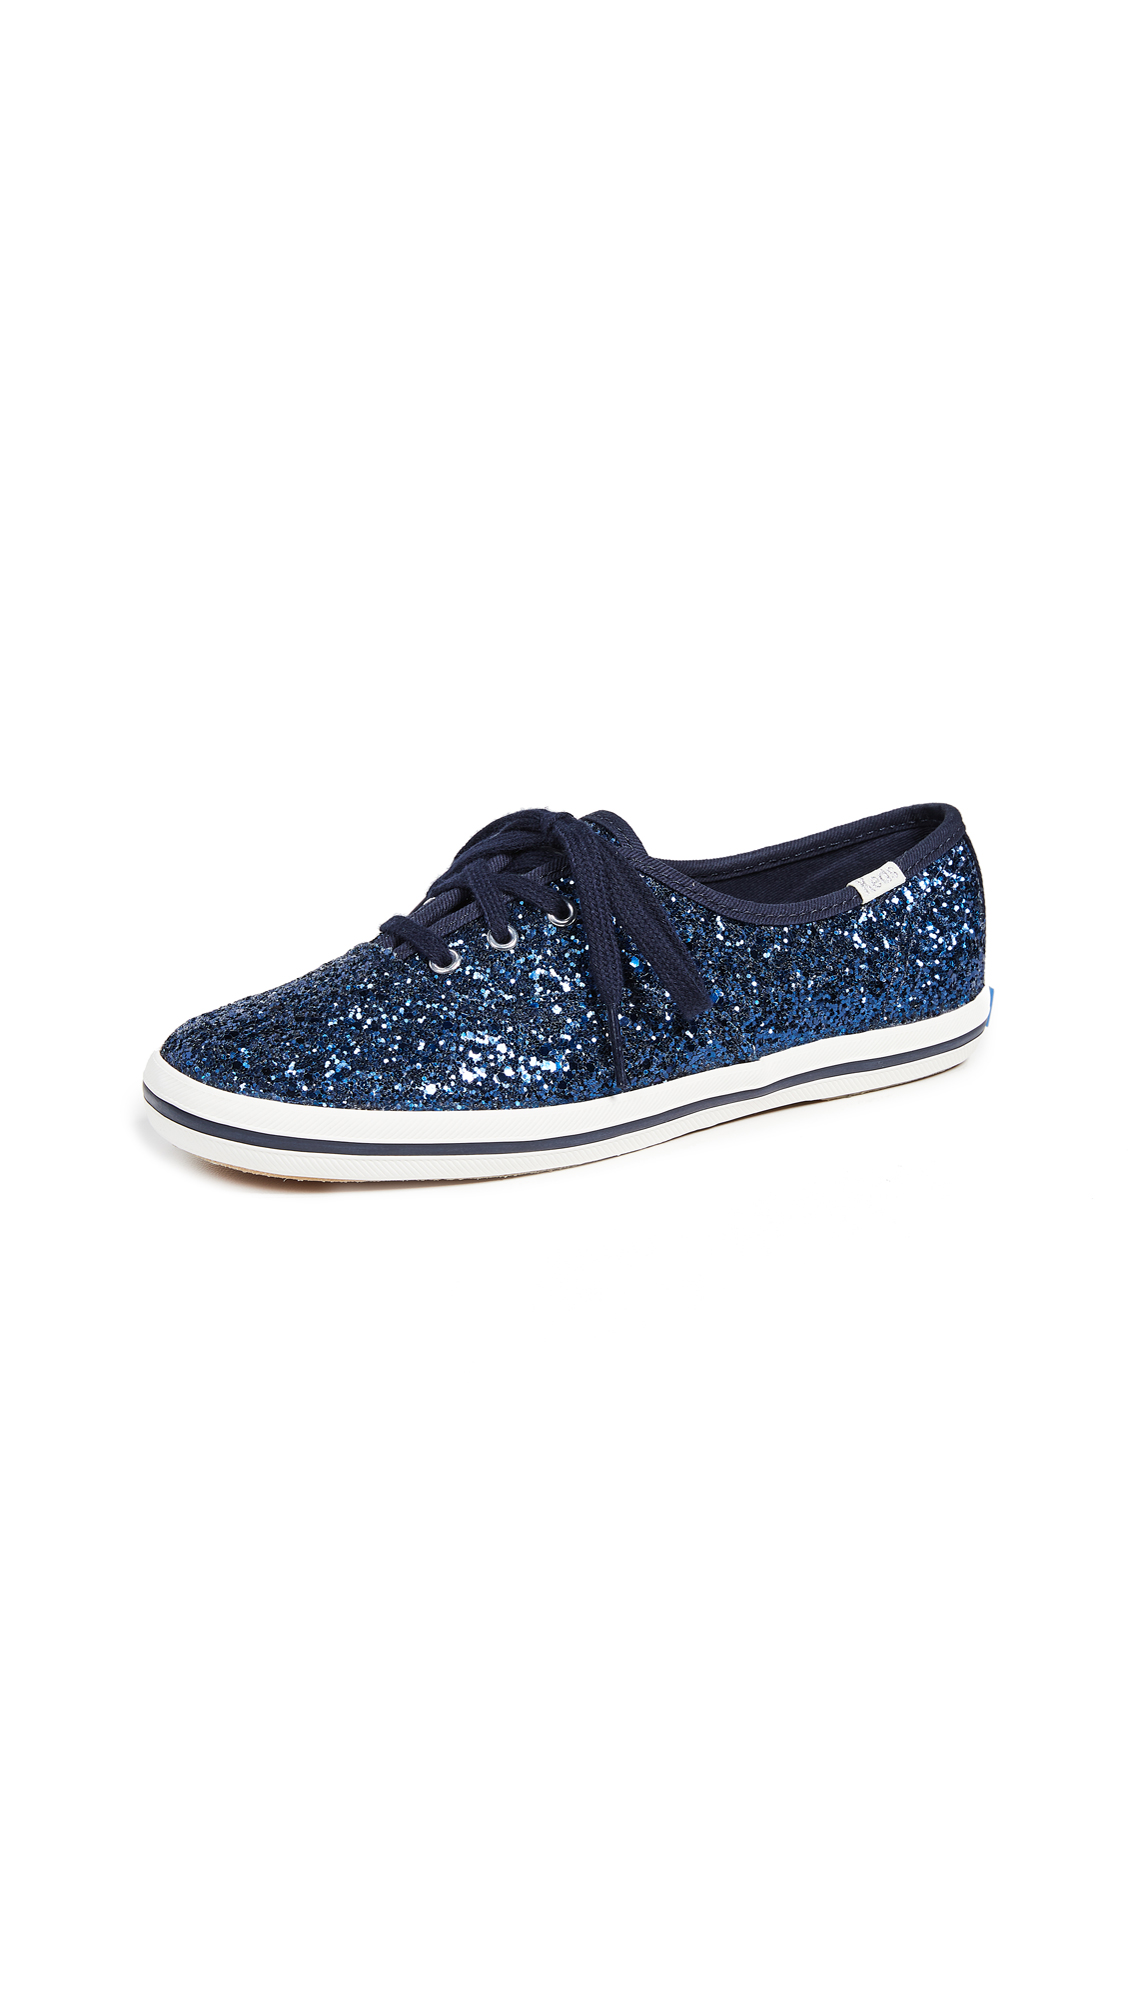 KEDS X Kate Spade Champion Sneakers in Navy